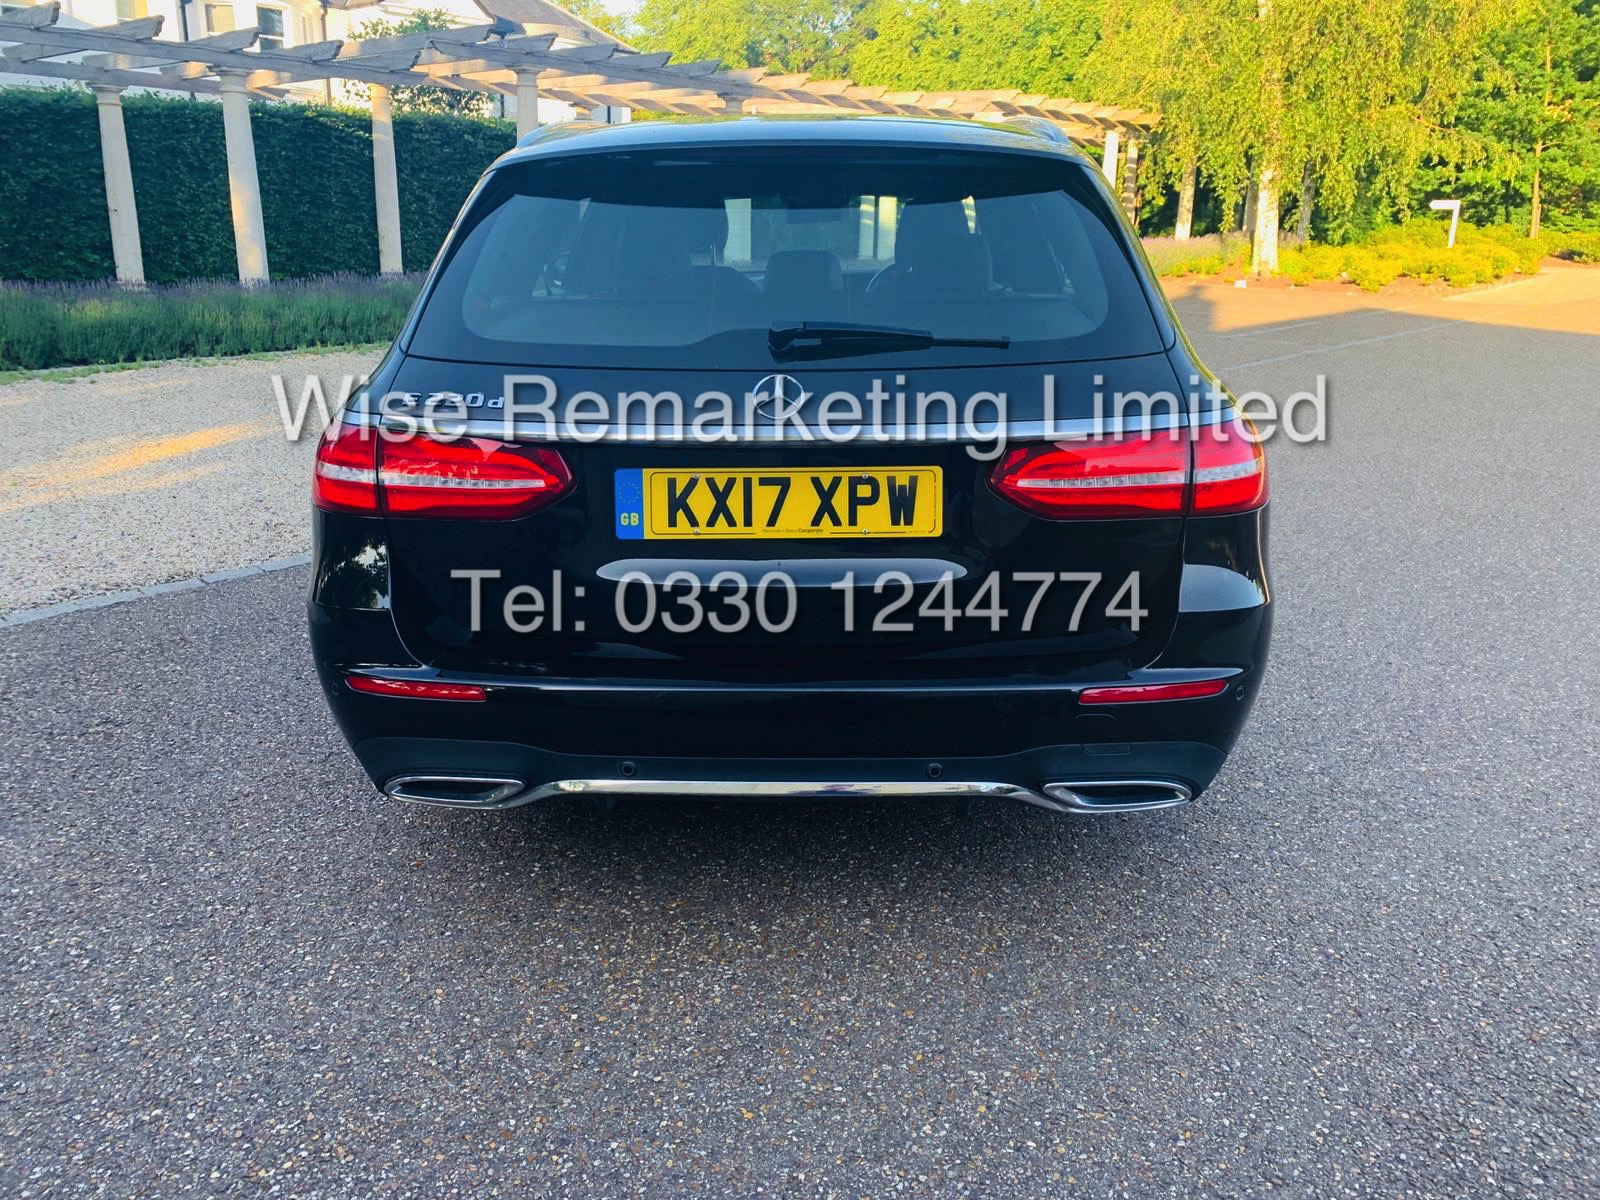 MERCEDES E CLASS ESTATE E220D AMG LINE 2017 / 9G -TRONIC / *LOW MILES* / 1 OWNER - Image 8 of 42